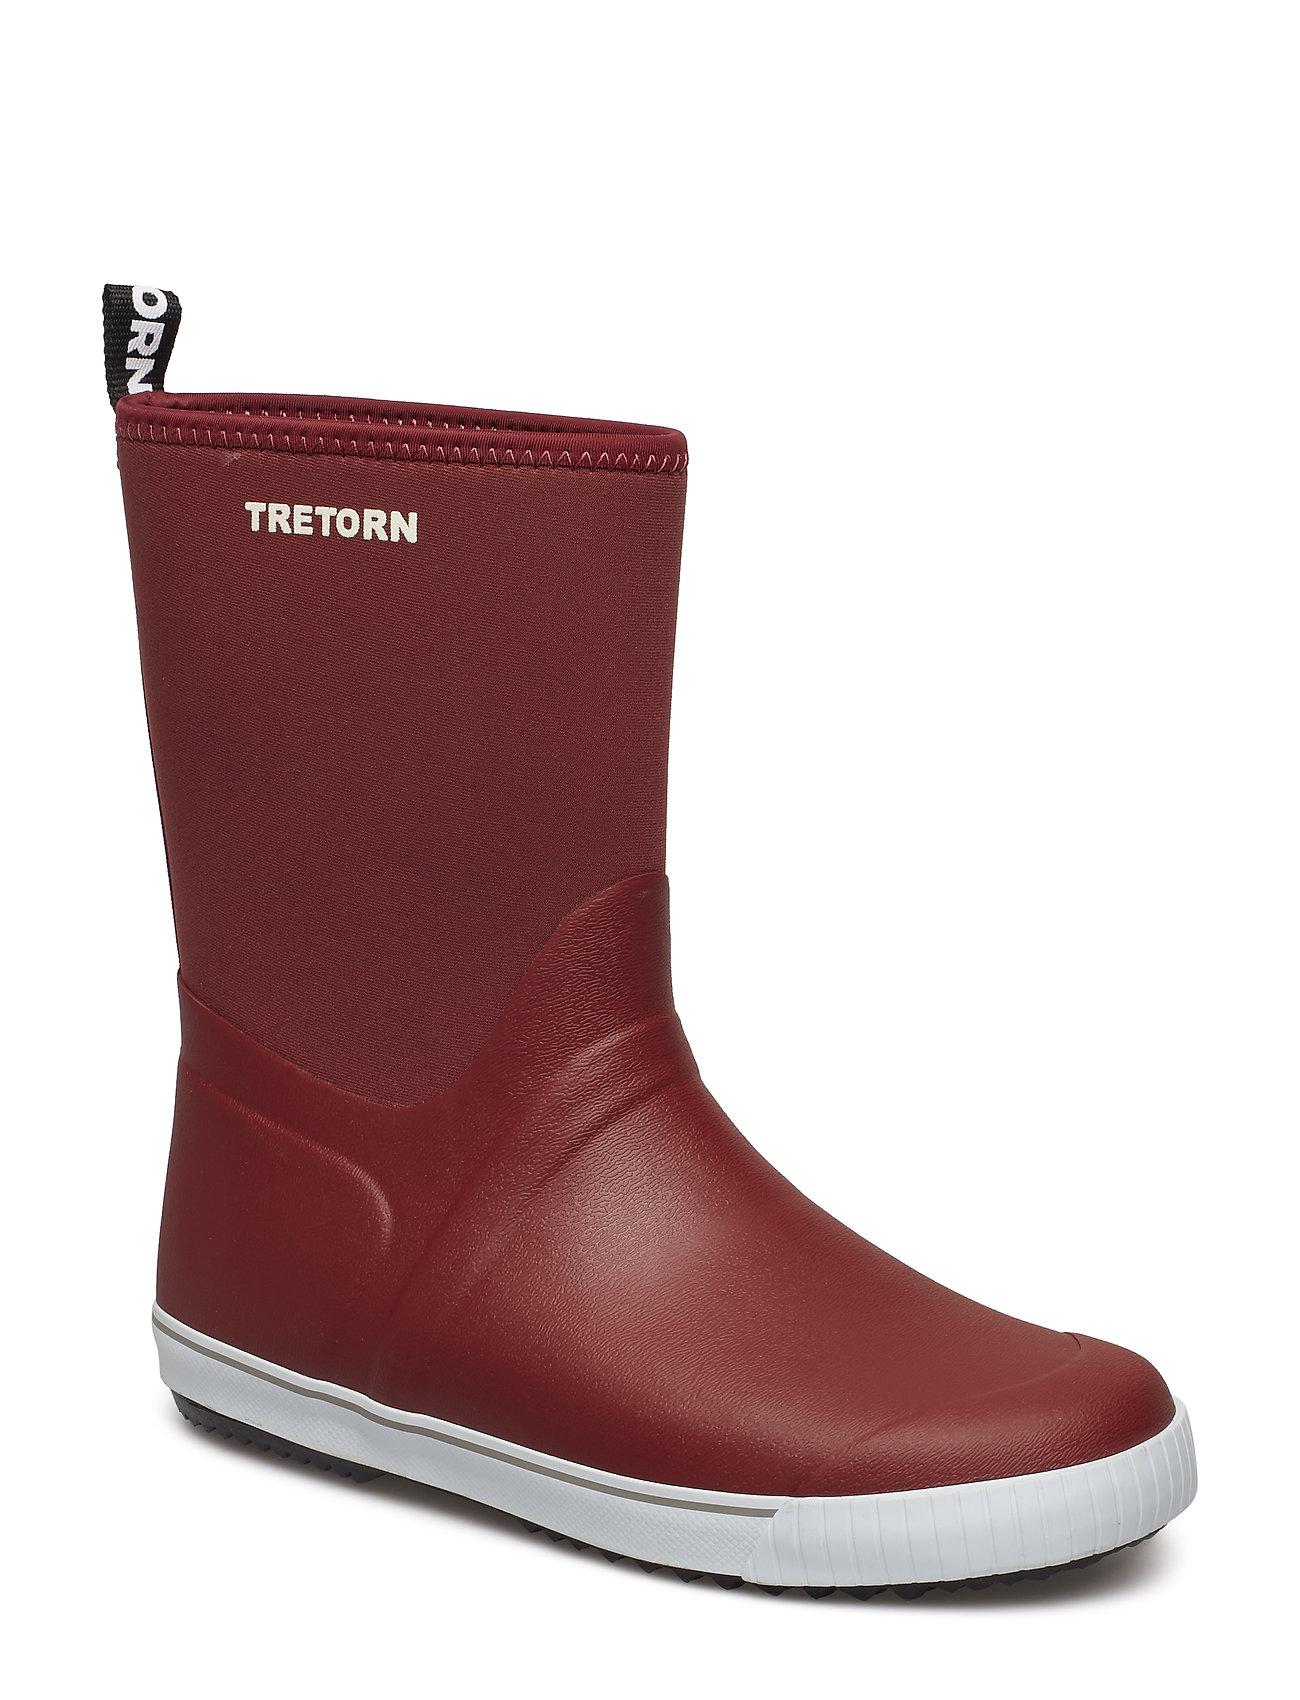 Tretorn WINGS NEO - 059/OAK RED